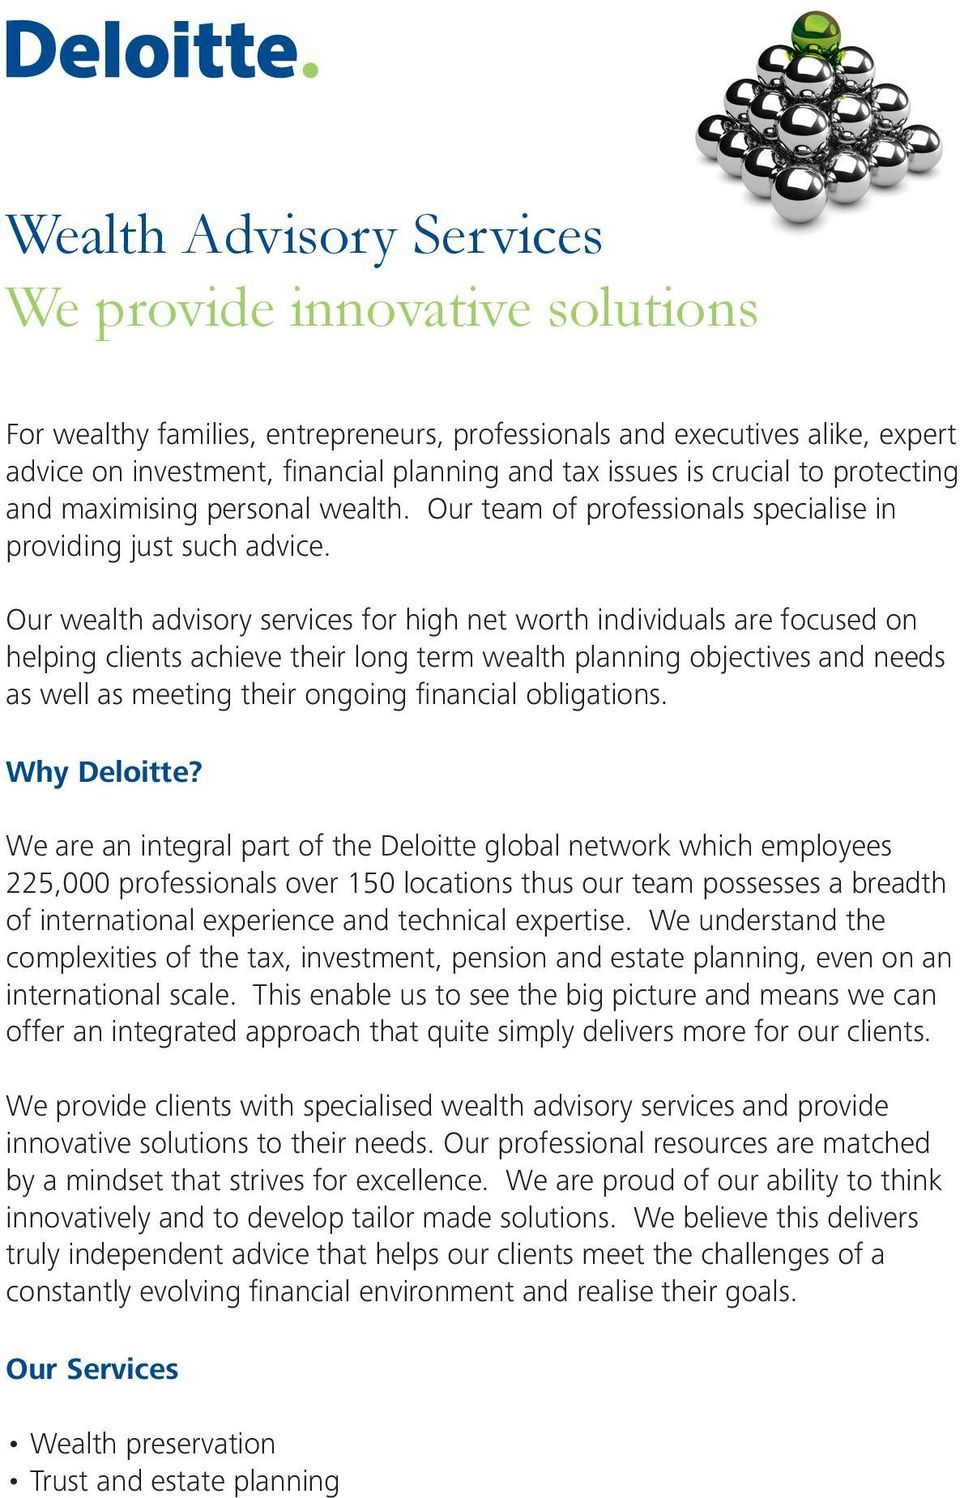 Our wealth advisory services for high net worth individuals are focused on helping clients achieve their long term wealth planning objectives and needs as well as meeting their ongoing financial